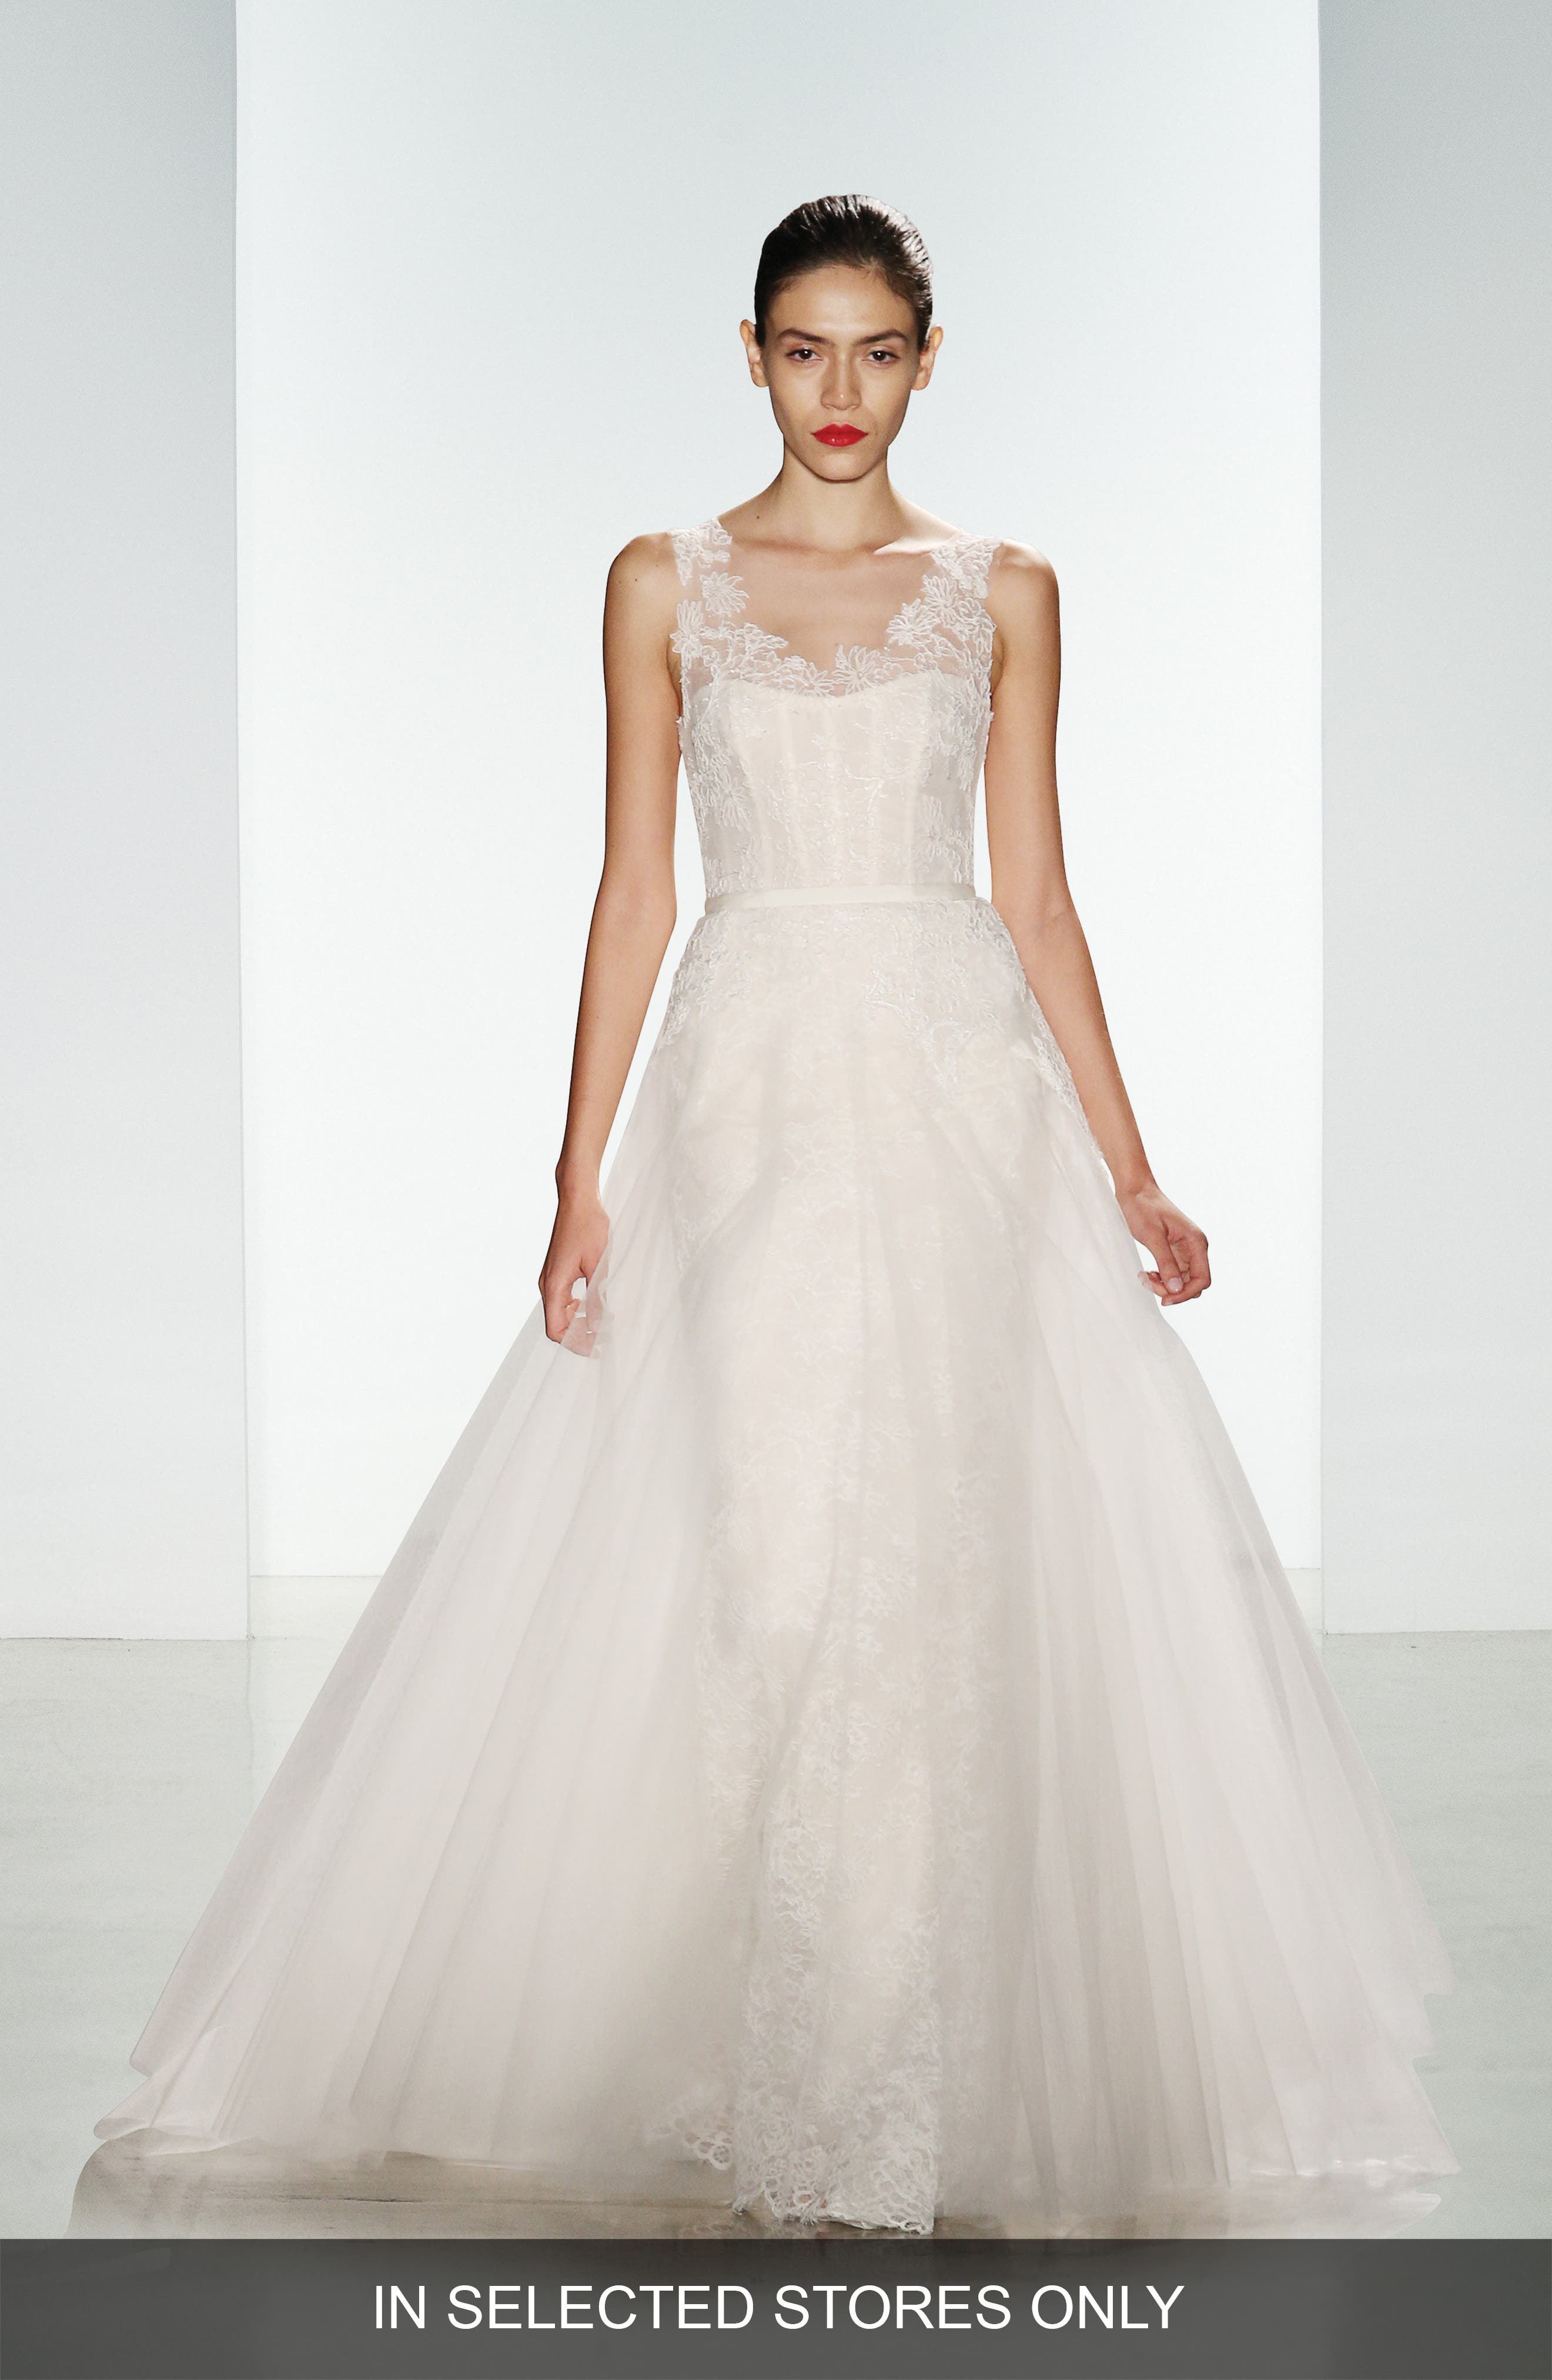 Rae Corded Lace Gown with Tulle Overskirt,                             Main thumbnail 1, color,                             Ivory/Blush